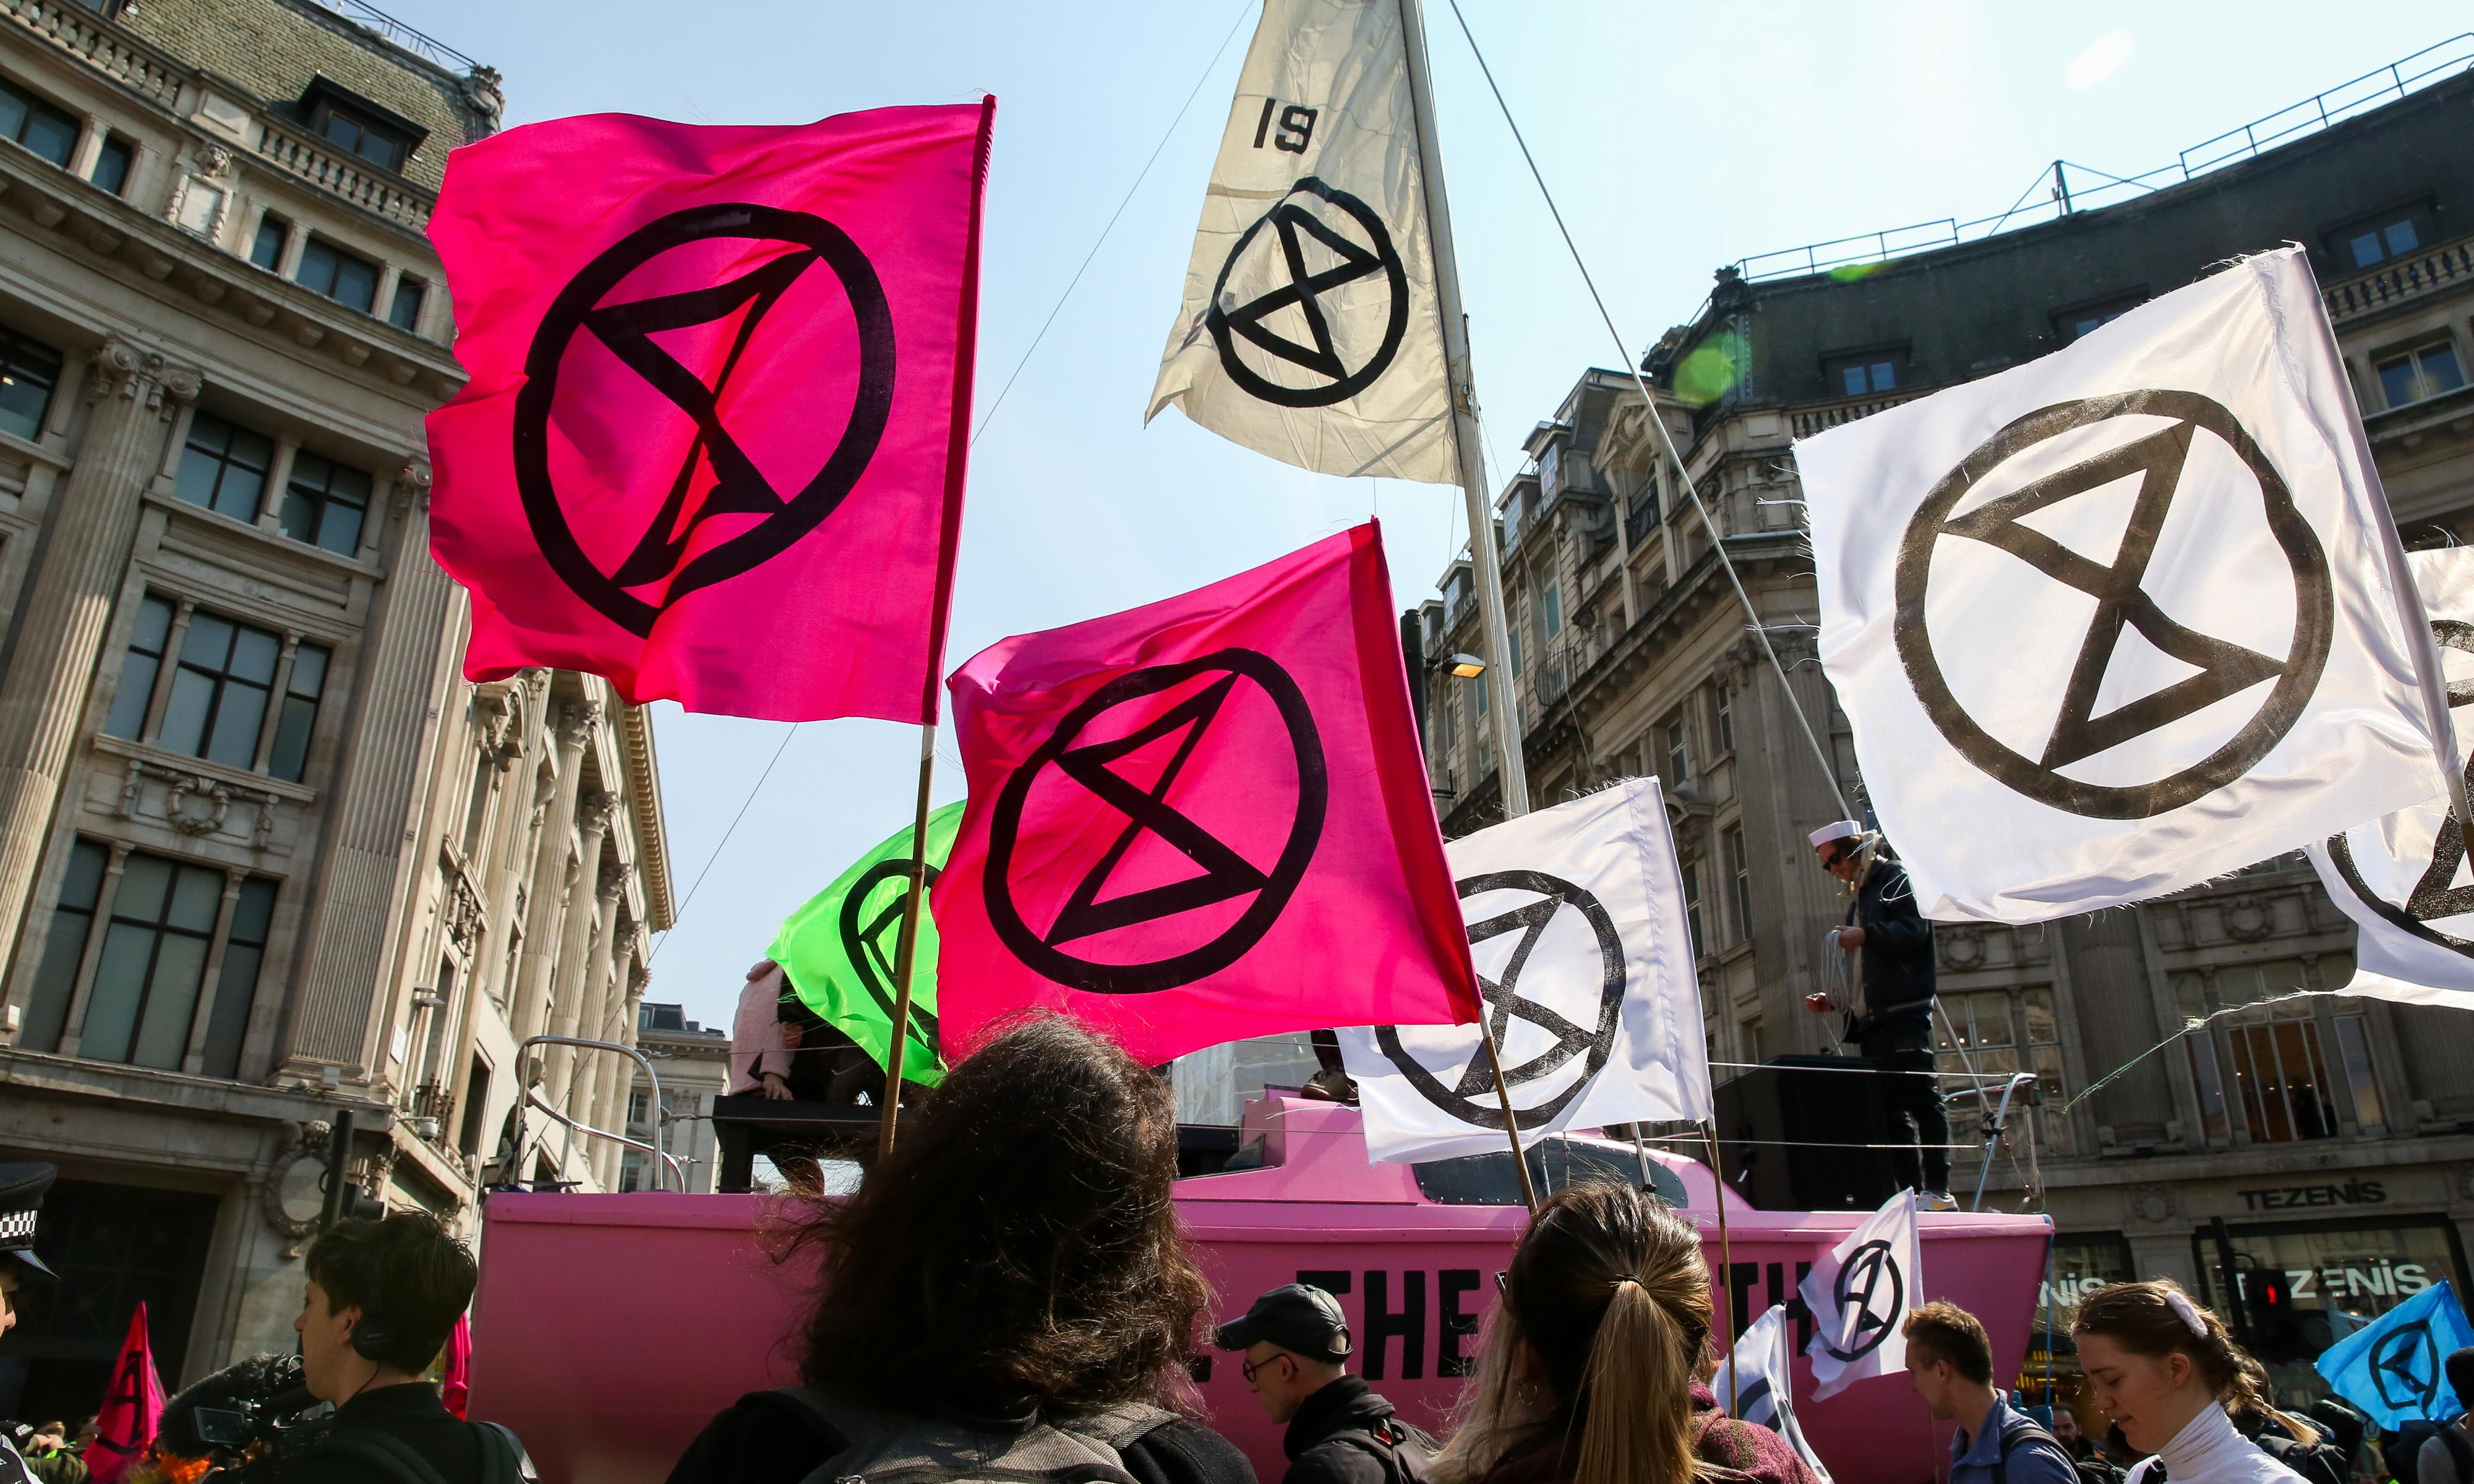 How the symbol for extinction became this generation's peace sign